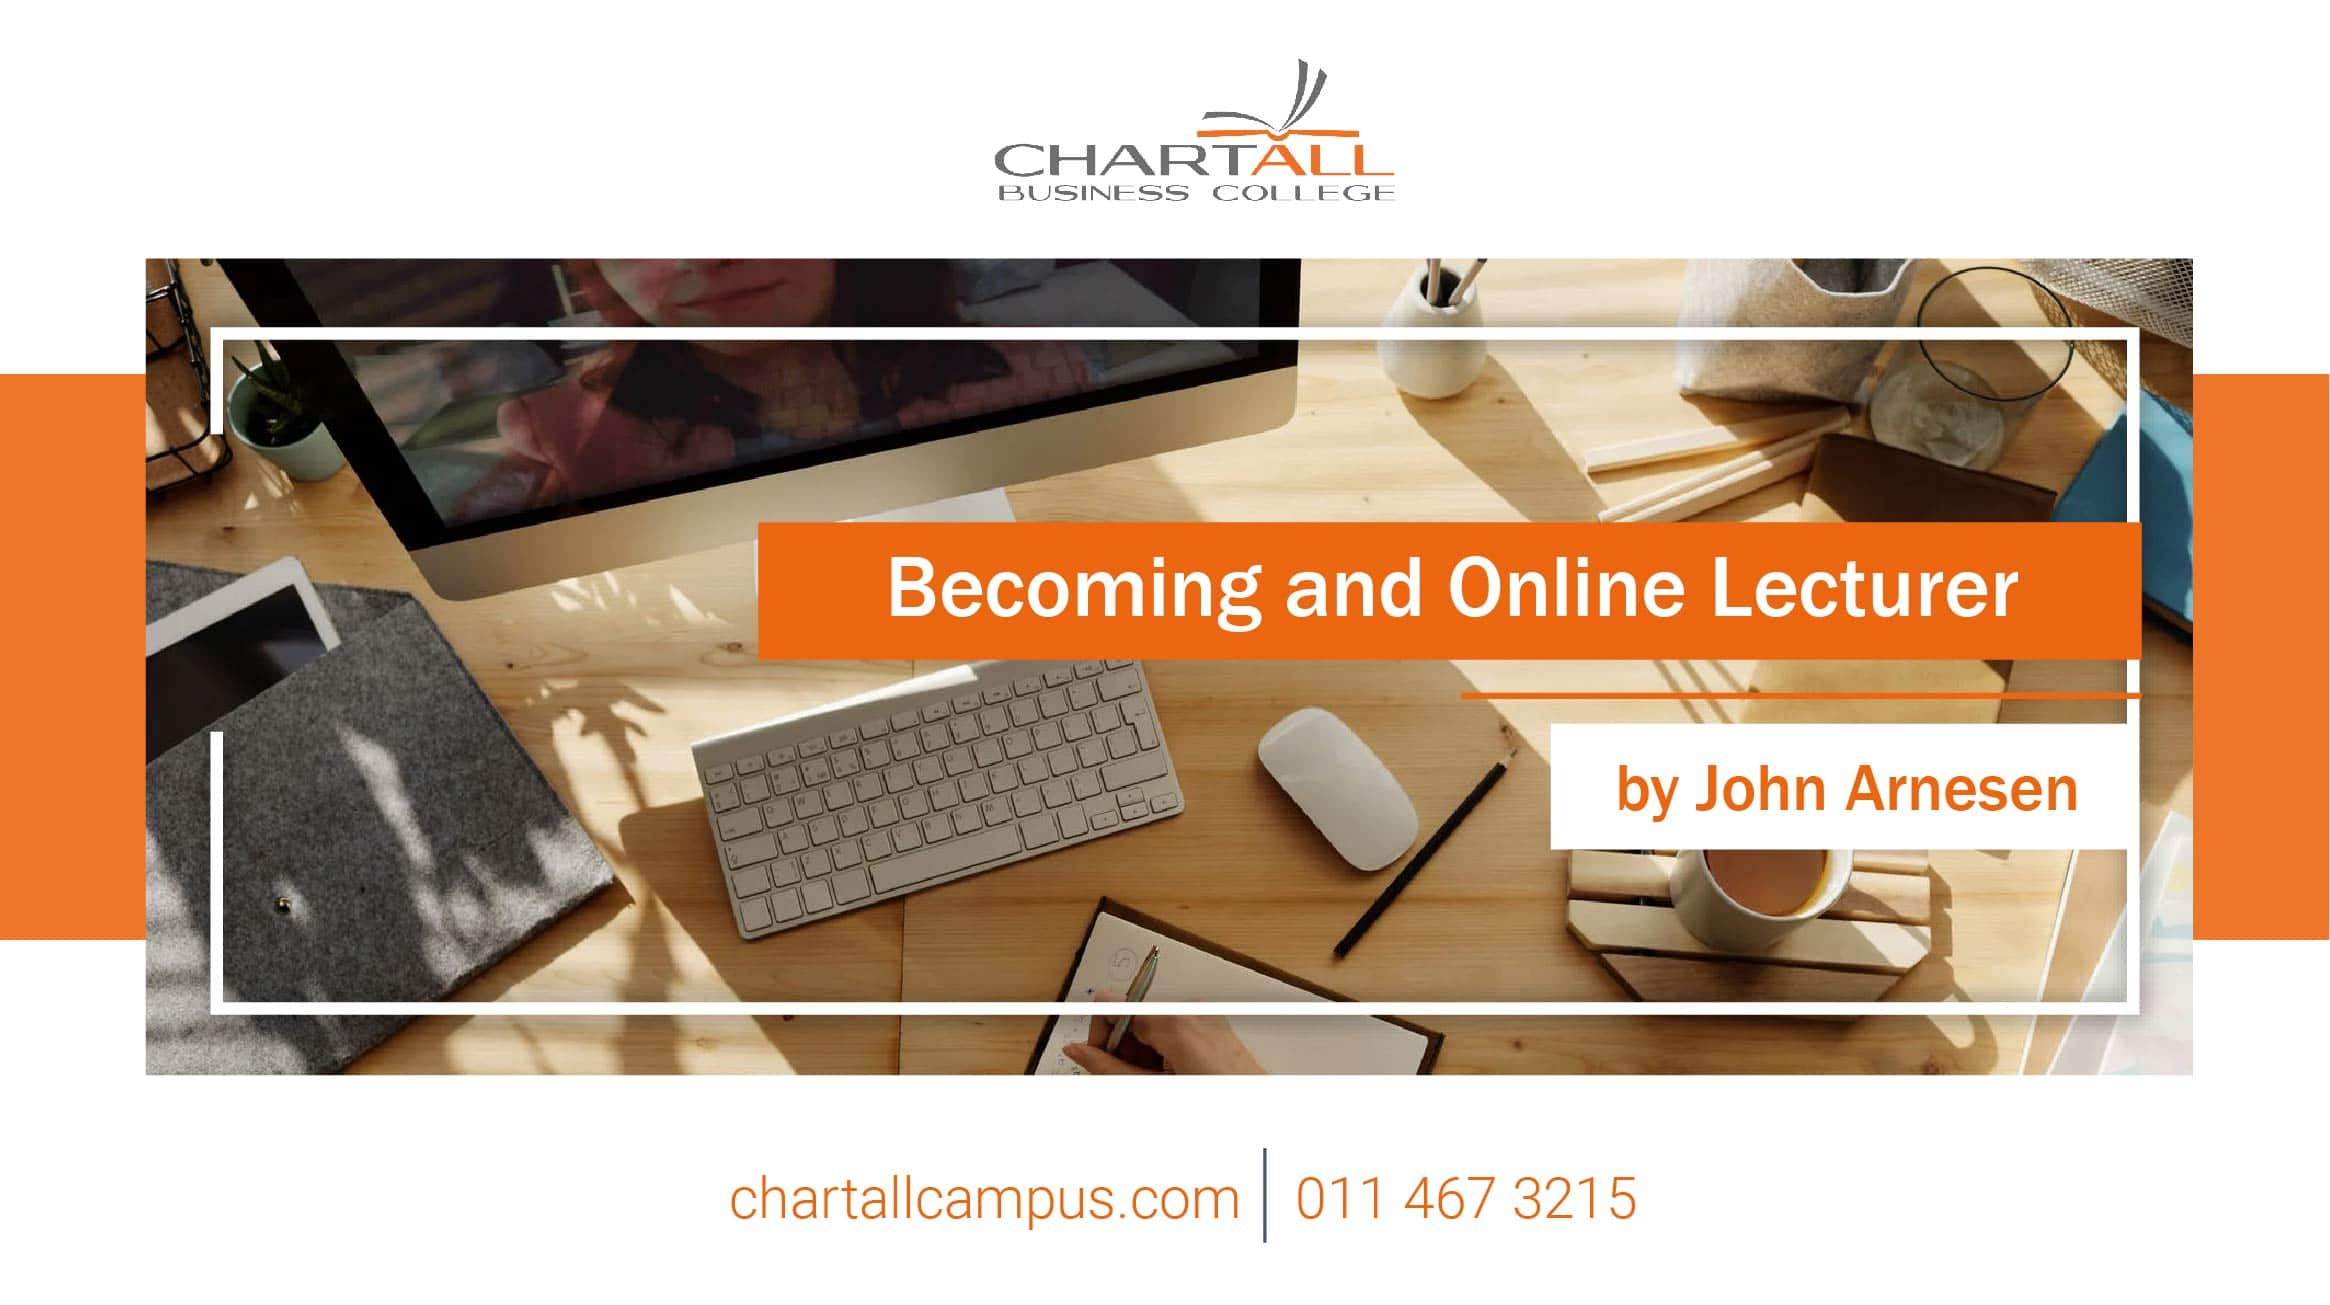 Becoming an Online Lecturer